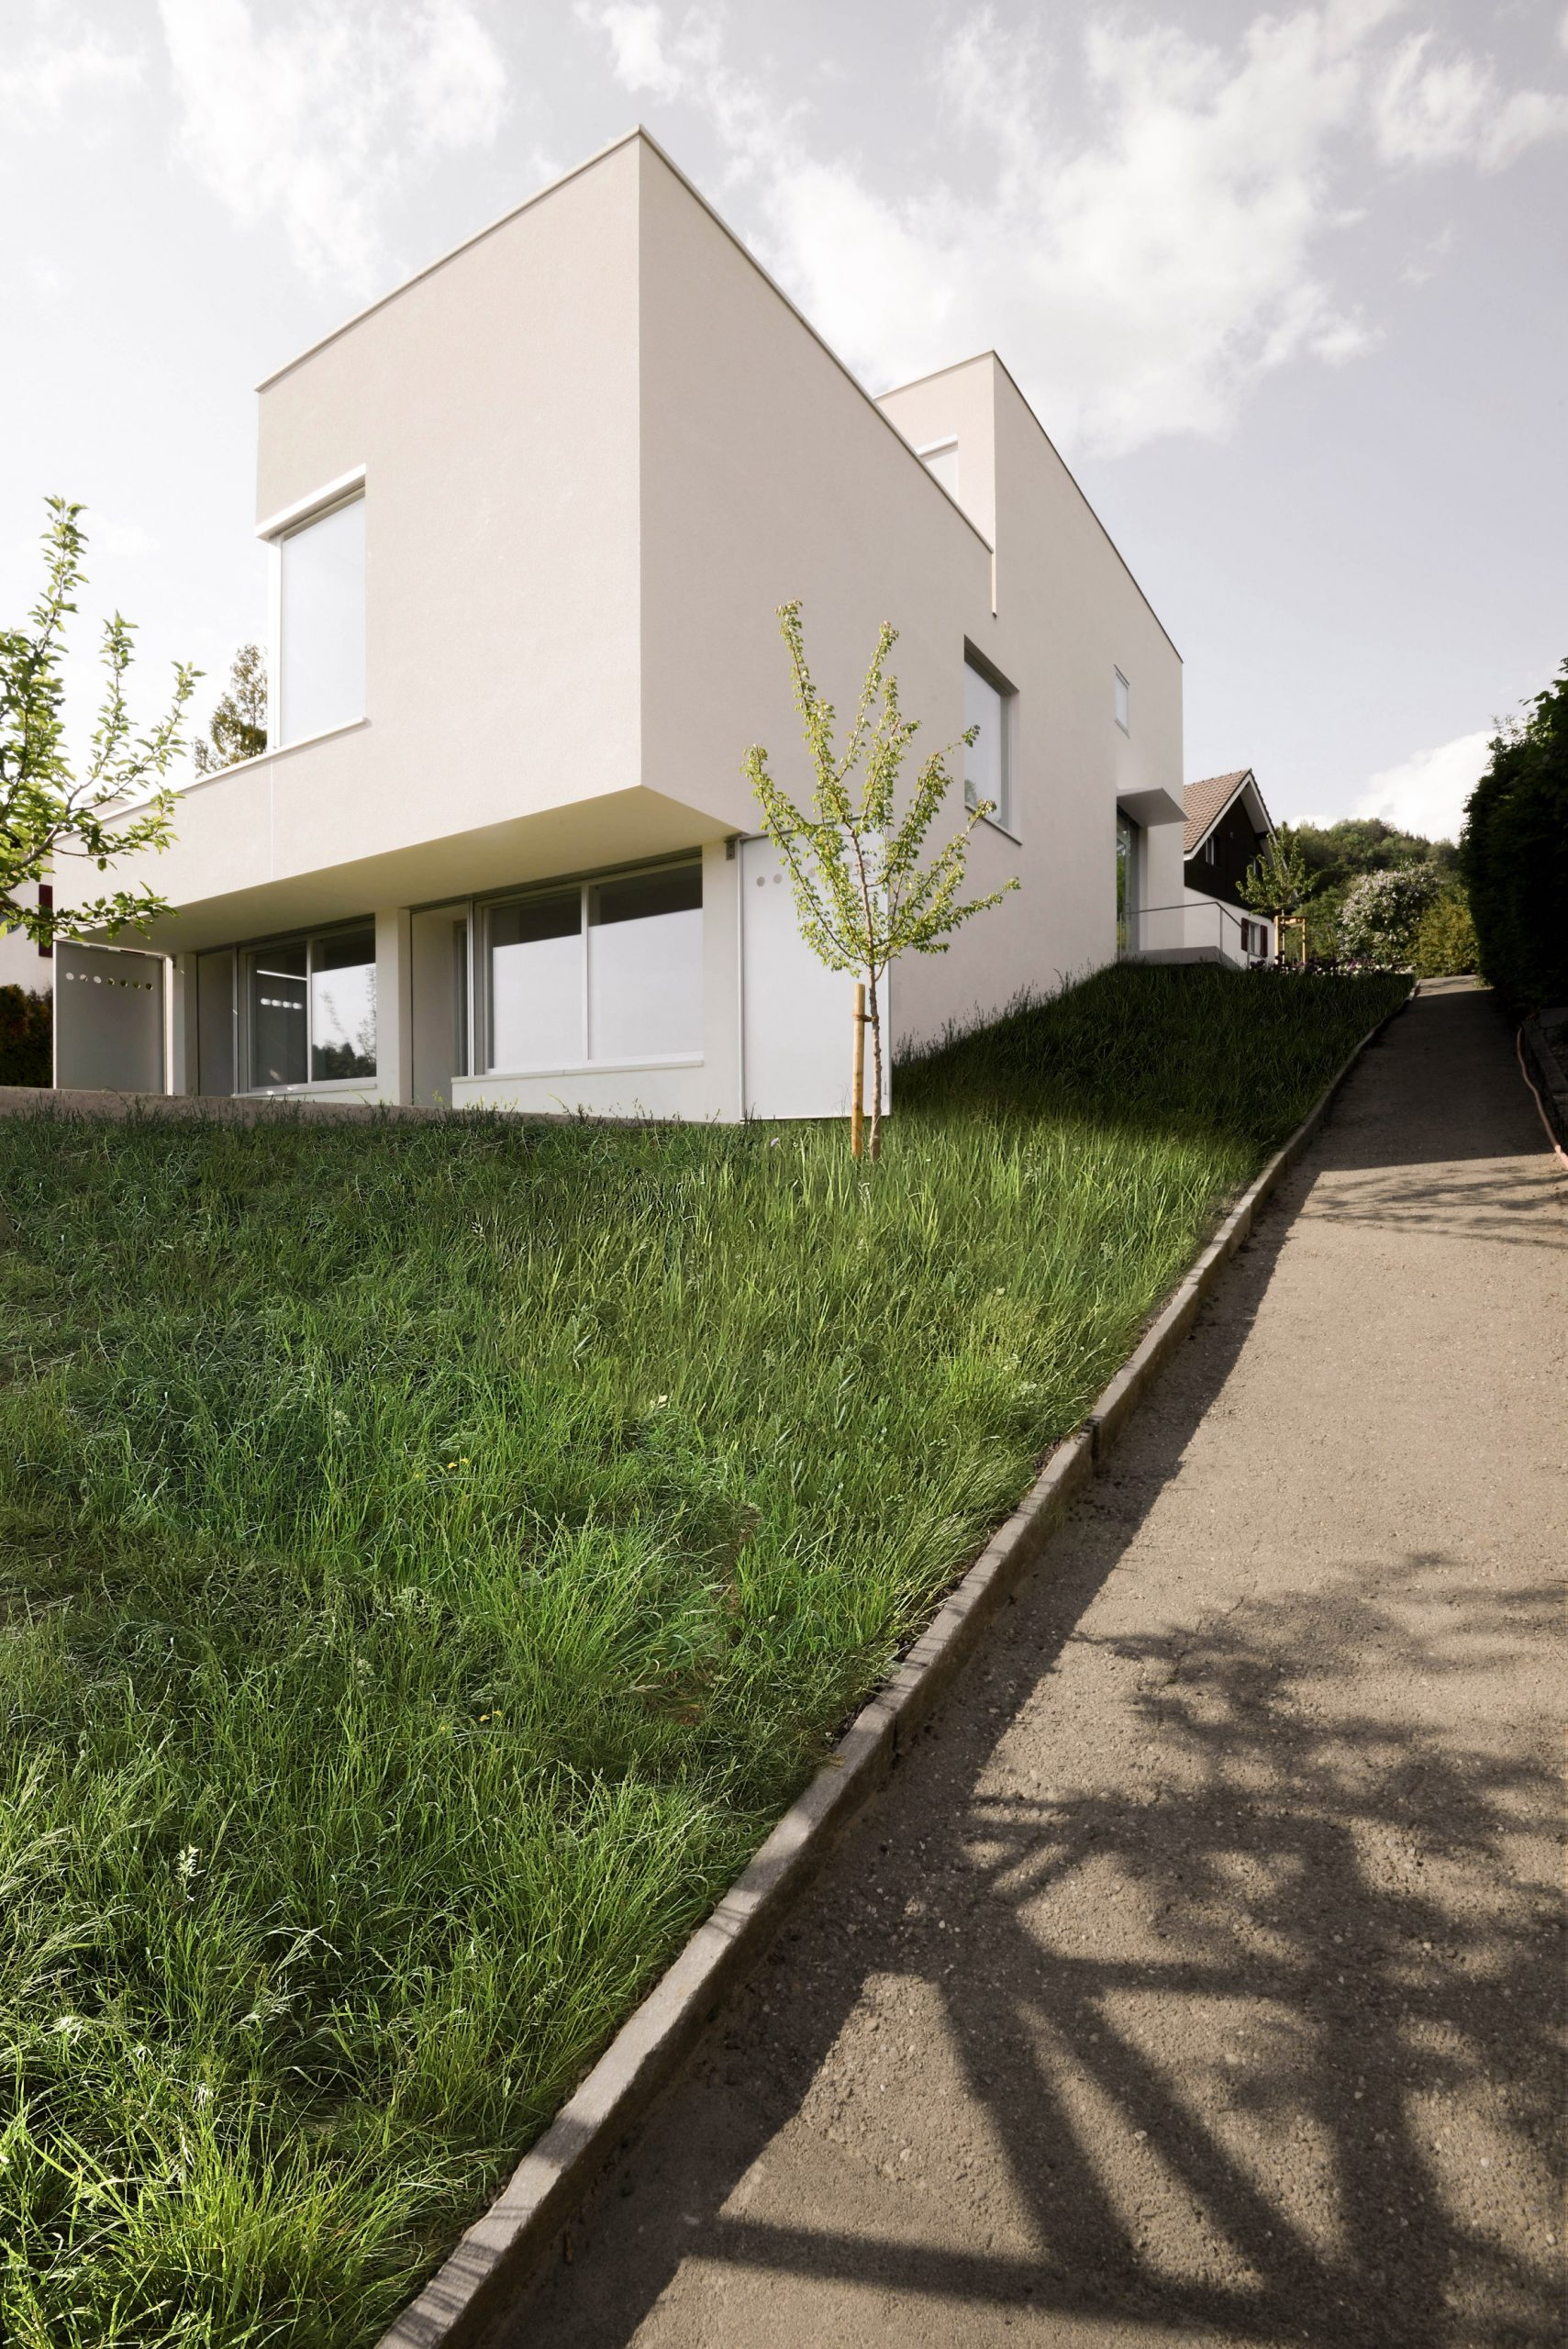 TS-H_01 house in Switzerland designed by Tom Strala